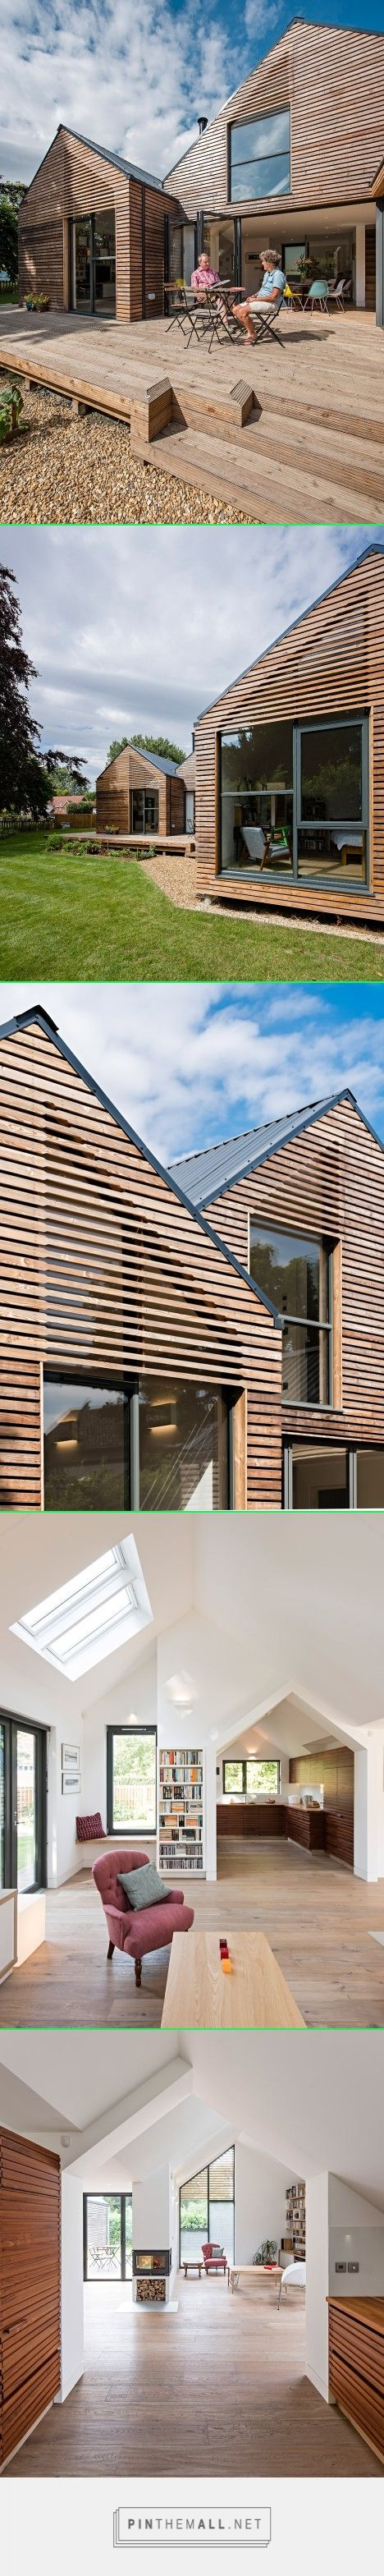 Baca's flood-resilient home beside an Oxfordshire brook  http://www.dezeen.com/2016/03/26/water-lane-baca-architects-floating-house-oxfordshire-brook-flood-resilient/ - created via https://pinthemall.net